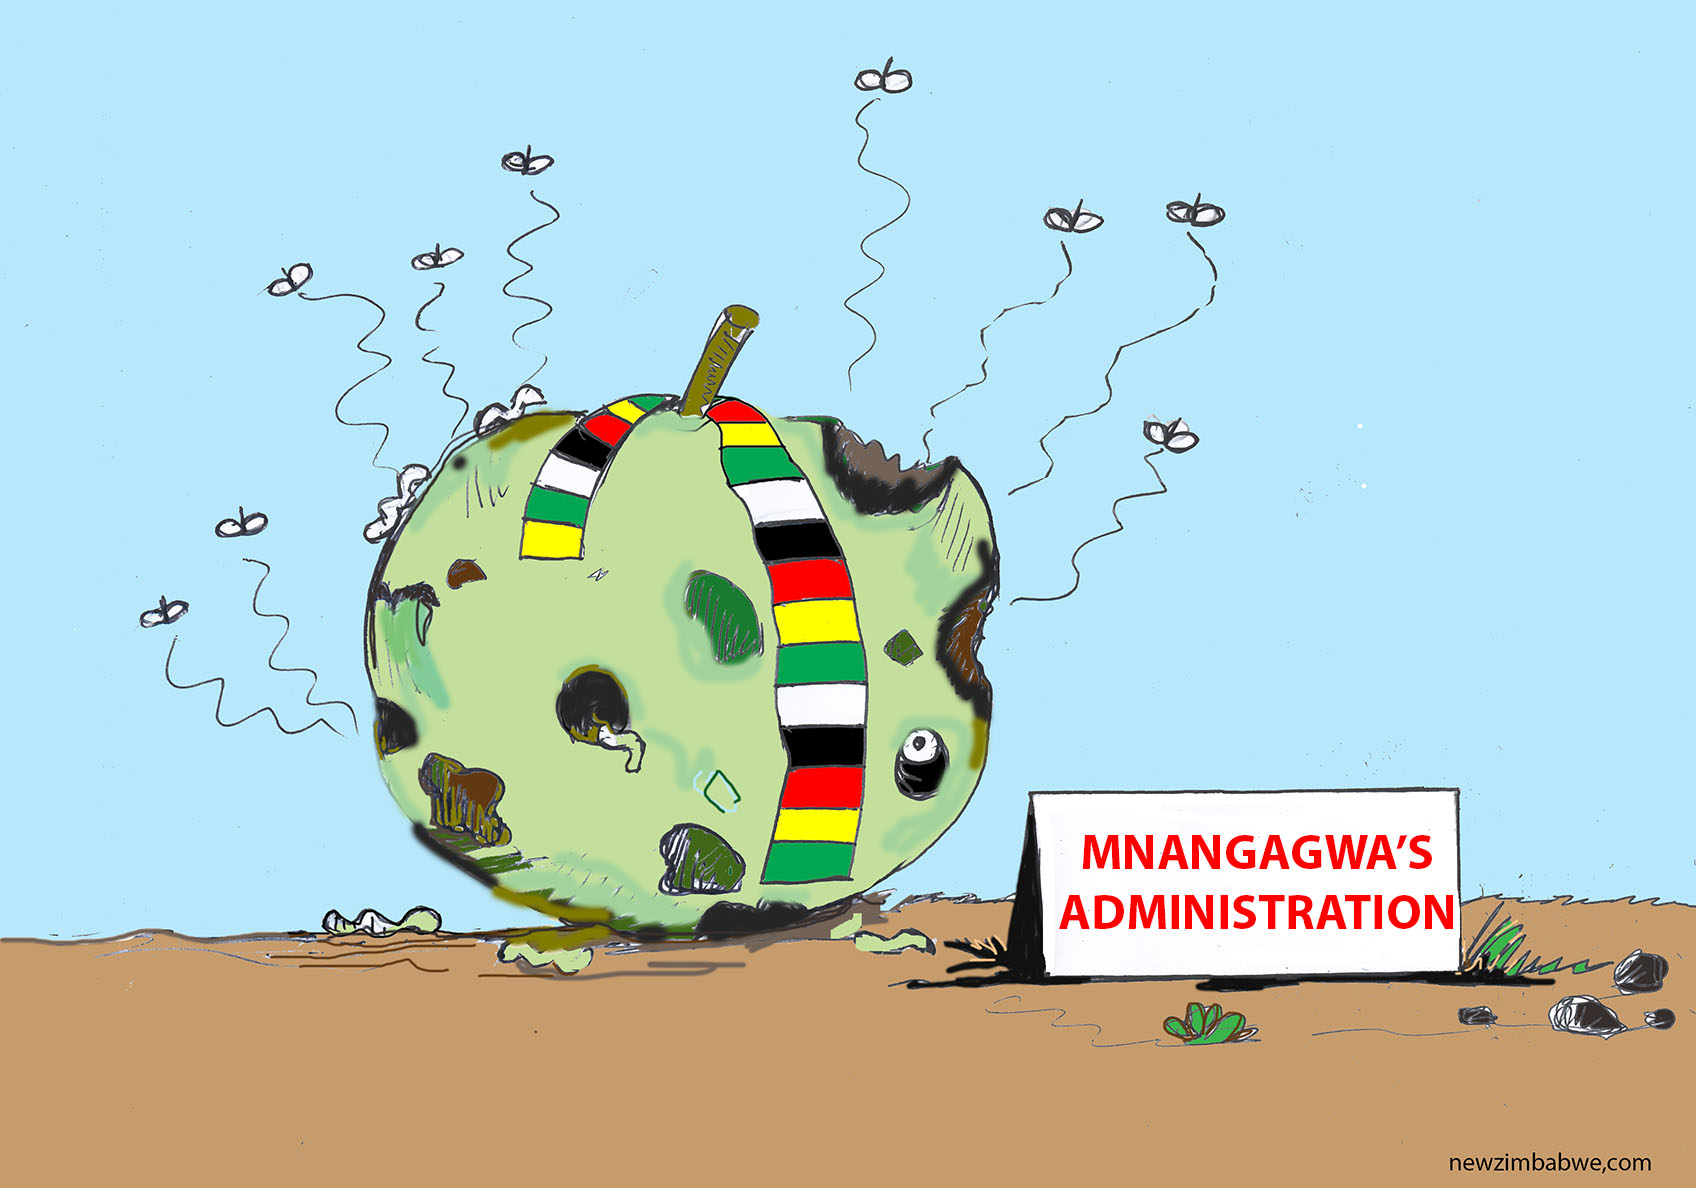 ED's administration